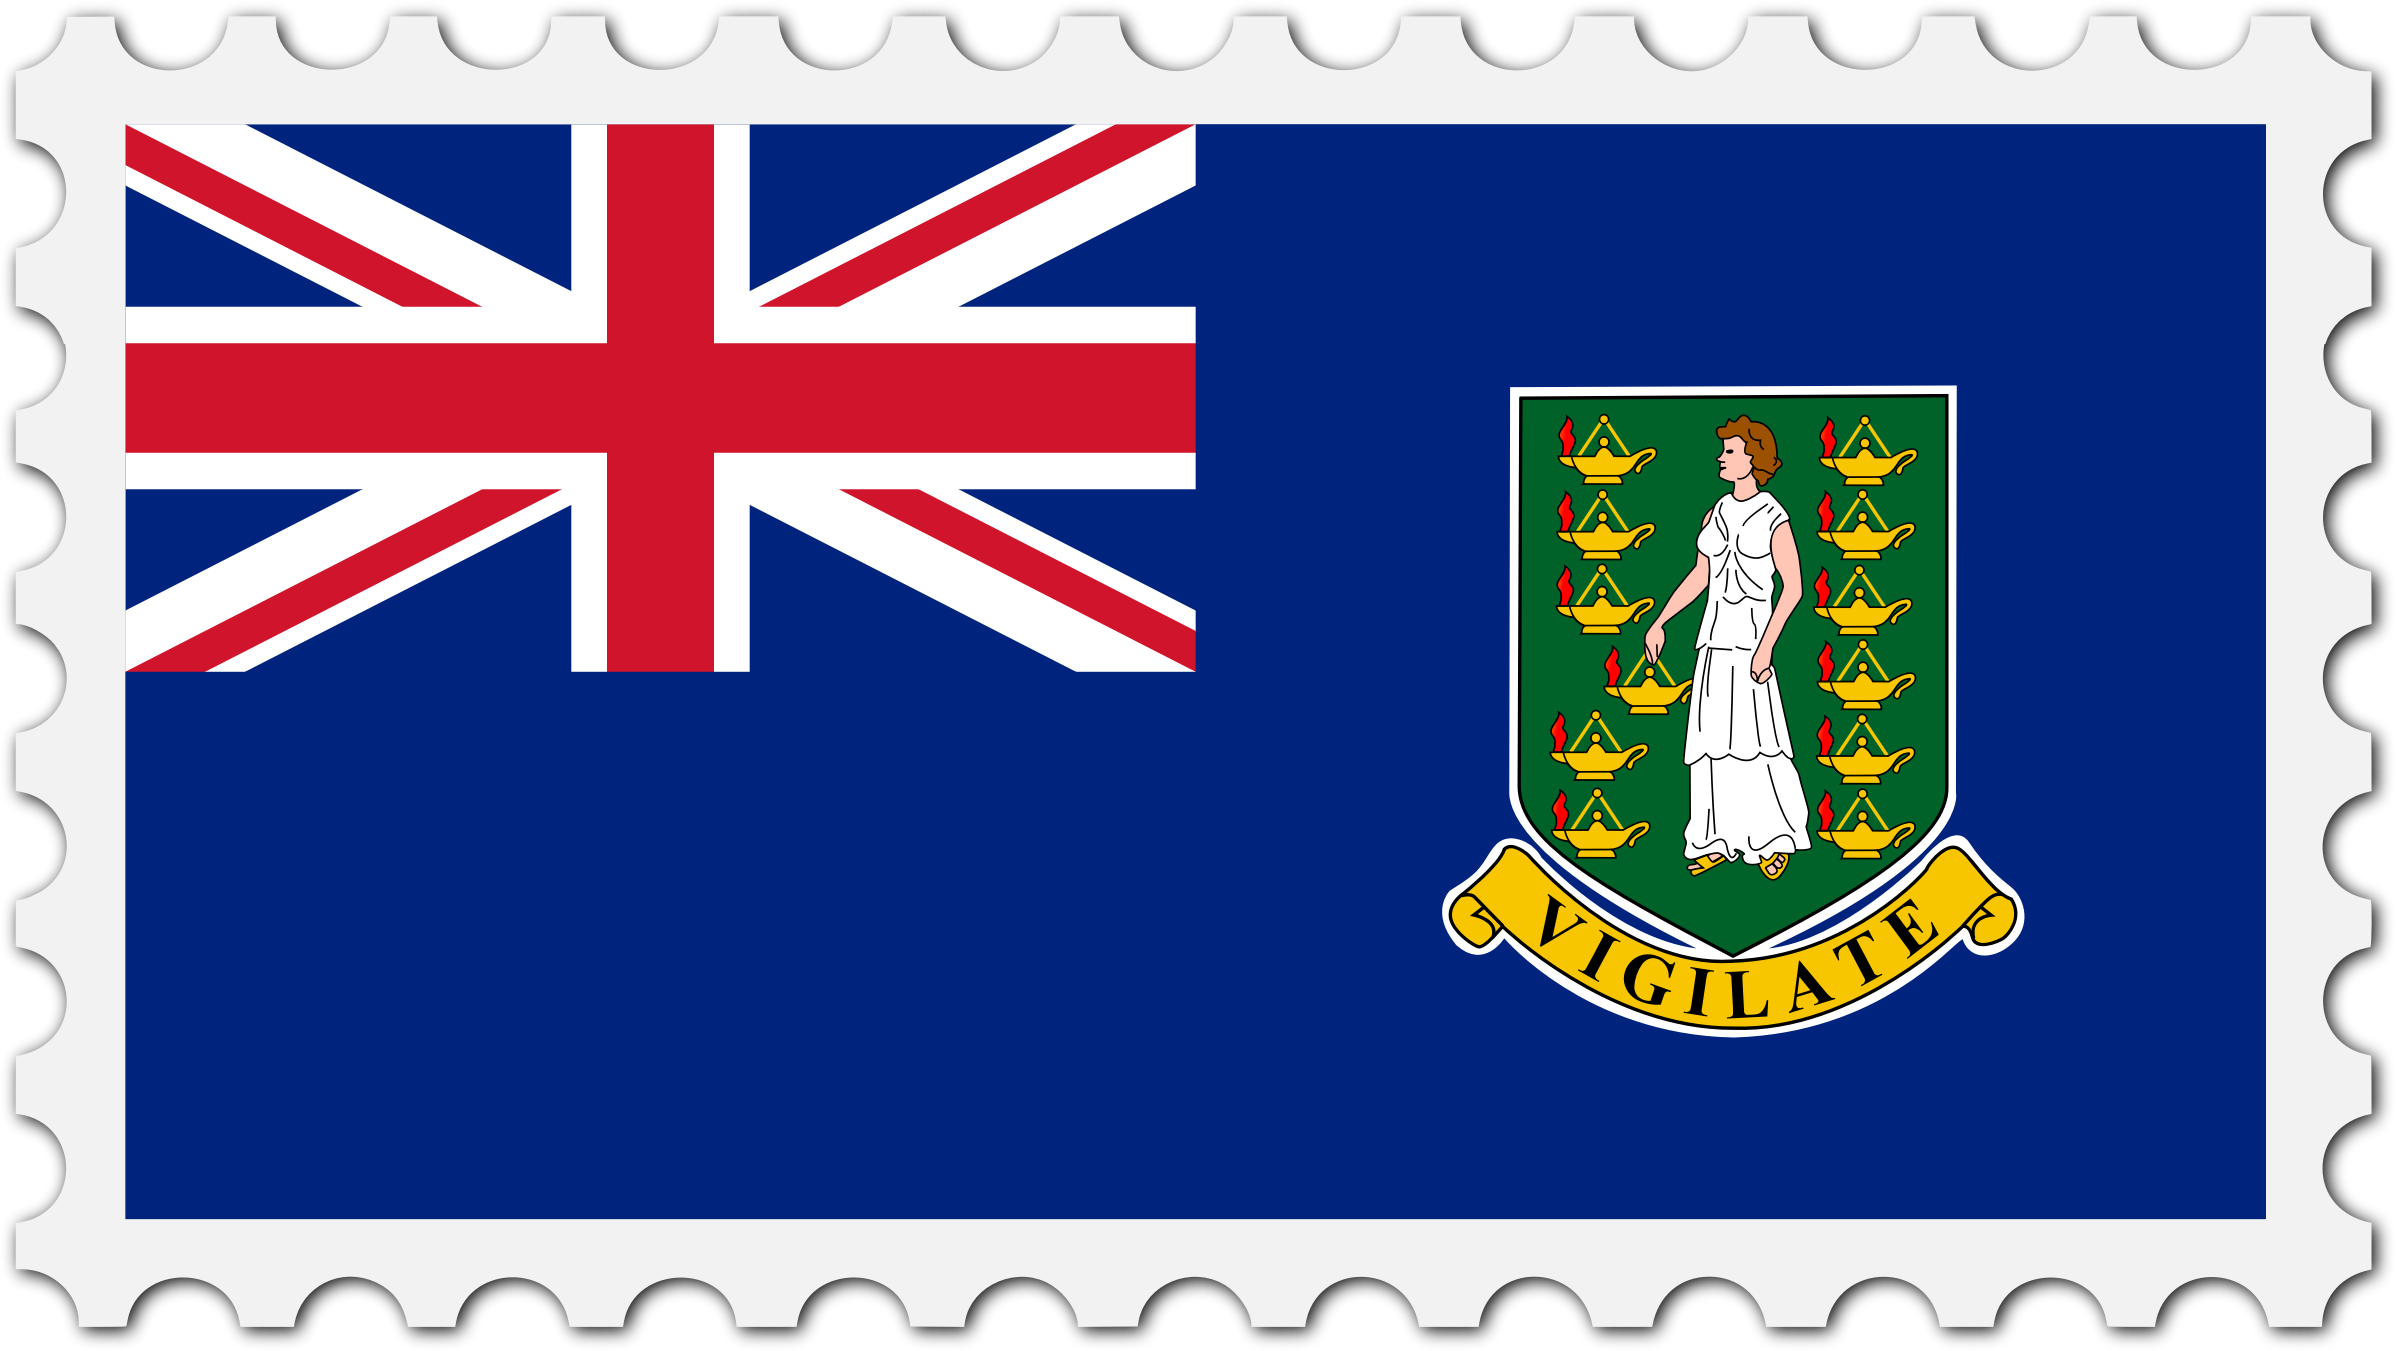 British Virgin Islands flag stamp by Firkin